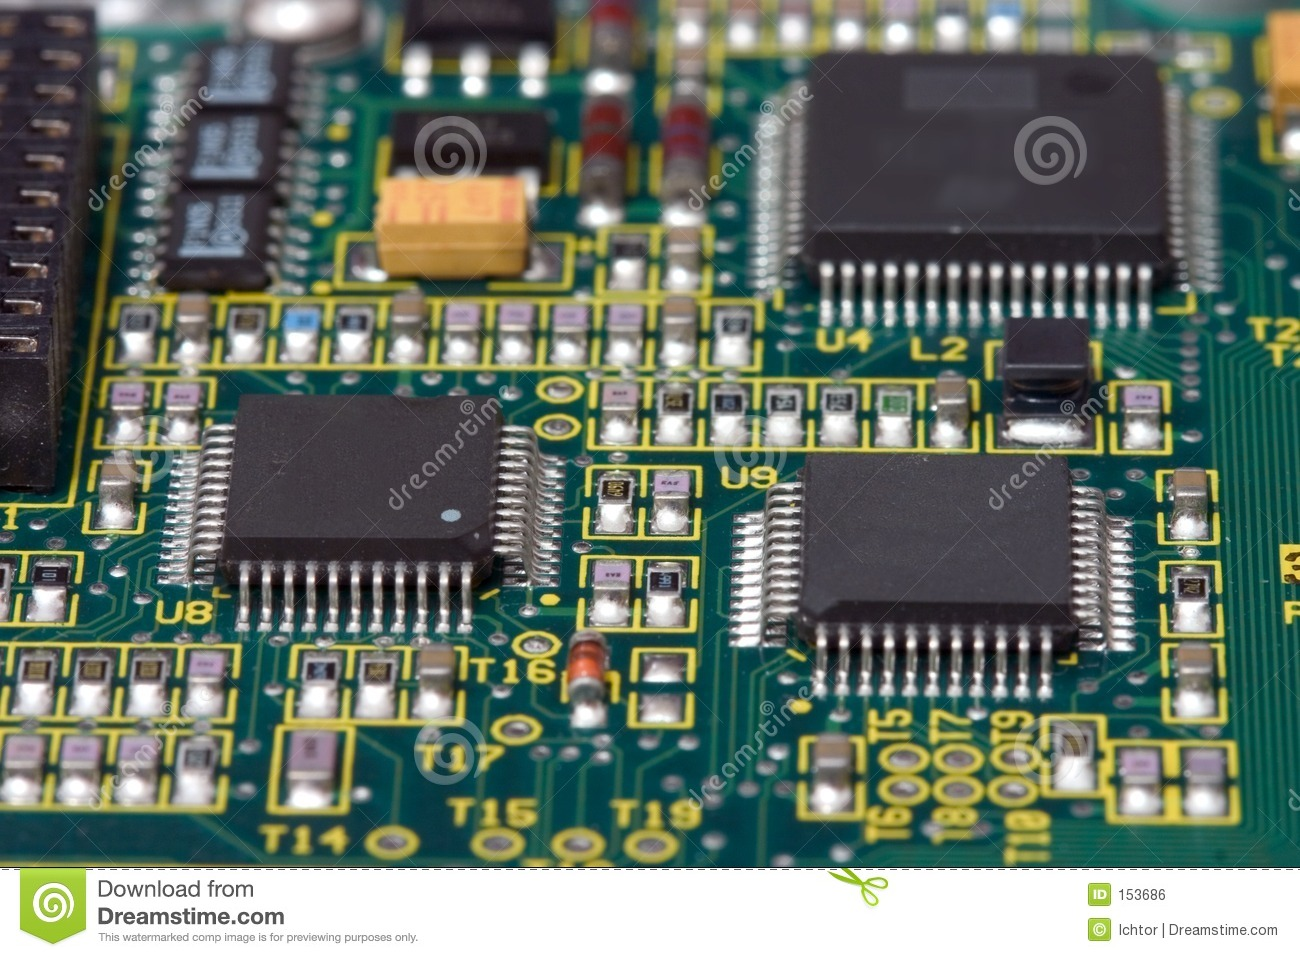 Pcb Stock Photo Image Of Silicon Board Printed Square 153686 Motherboard Circuit Components Find With Microprocessors And Other